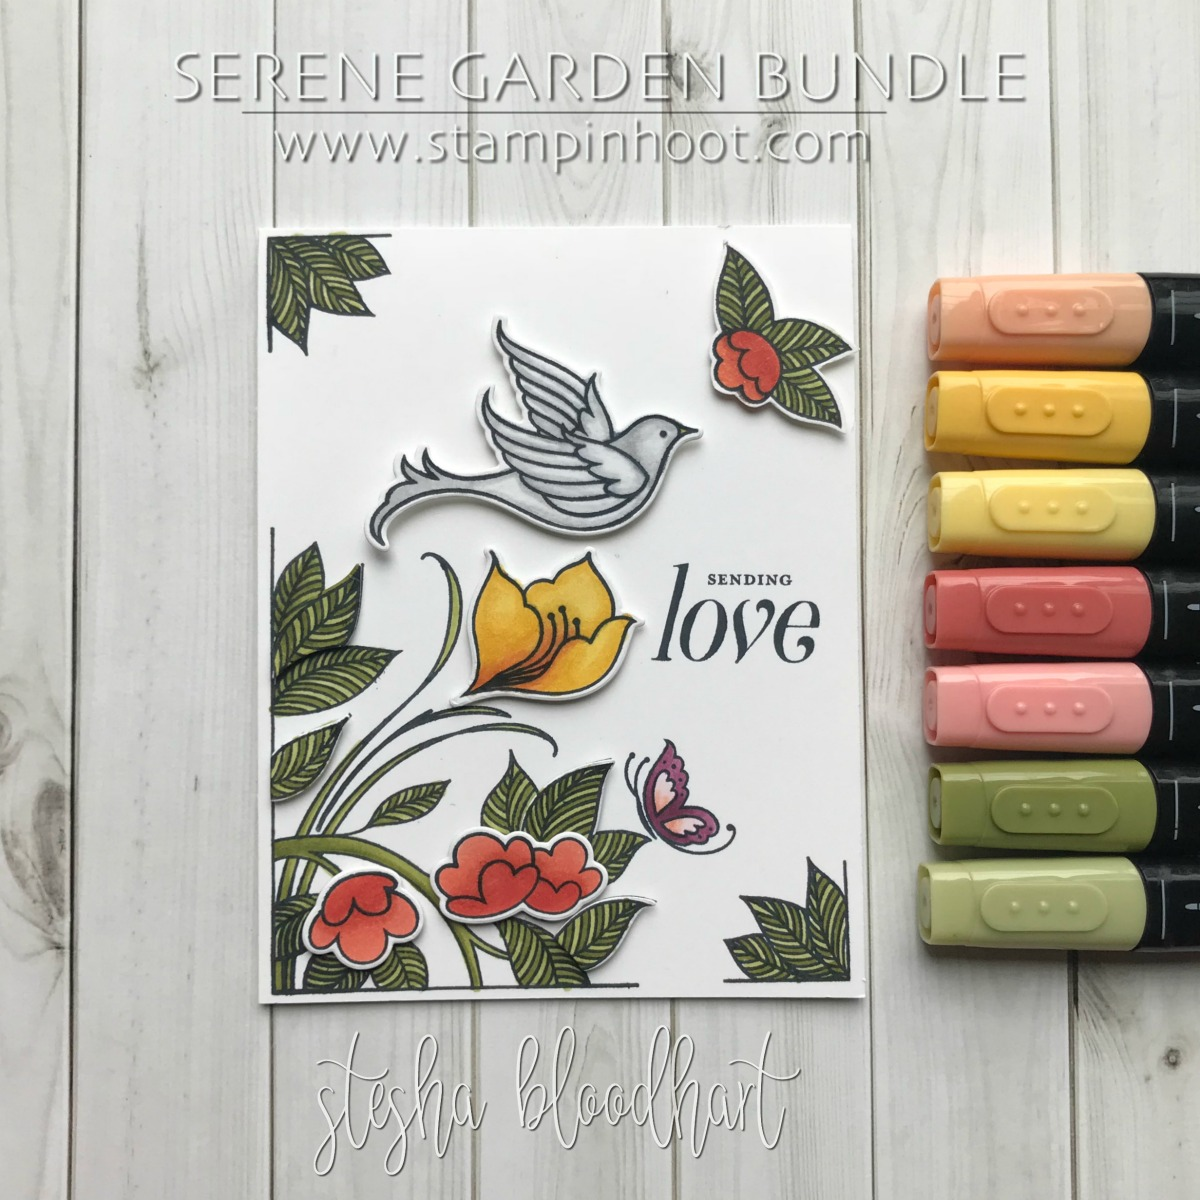 https://stampinhoot.com/wp-content/uploads/2018/06/Serene-Garden-Bundle-Labeled-.jpg